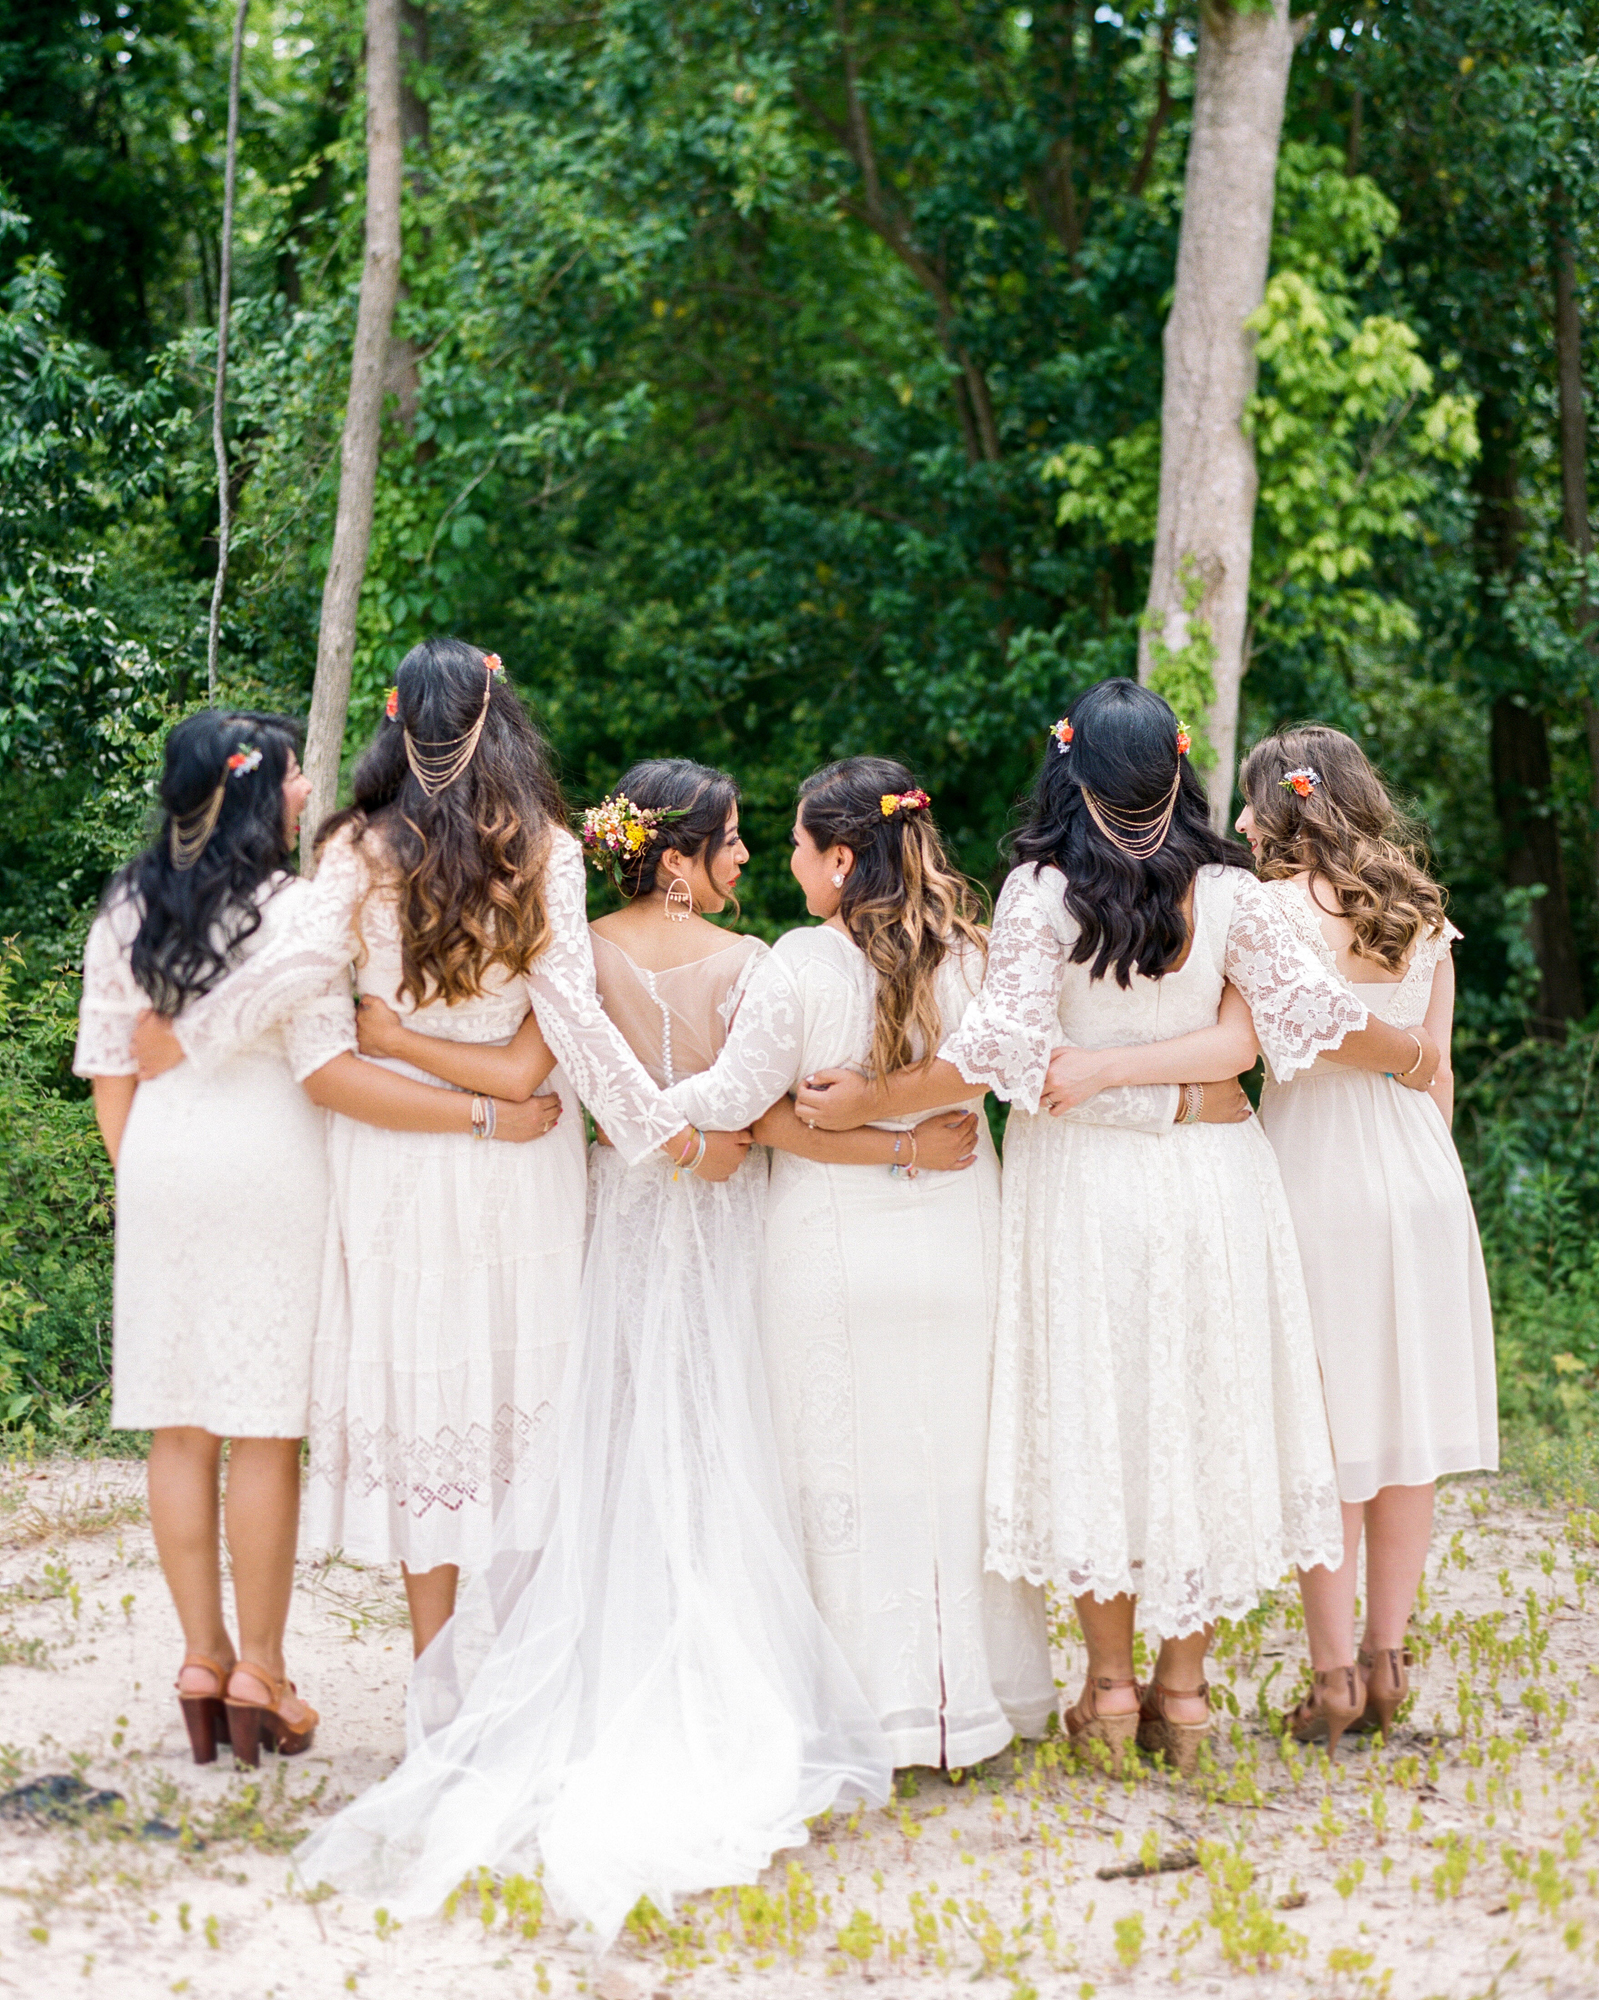 atalia-raul-wedding-bridesmaids-27-s112395-1215.jpg